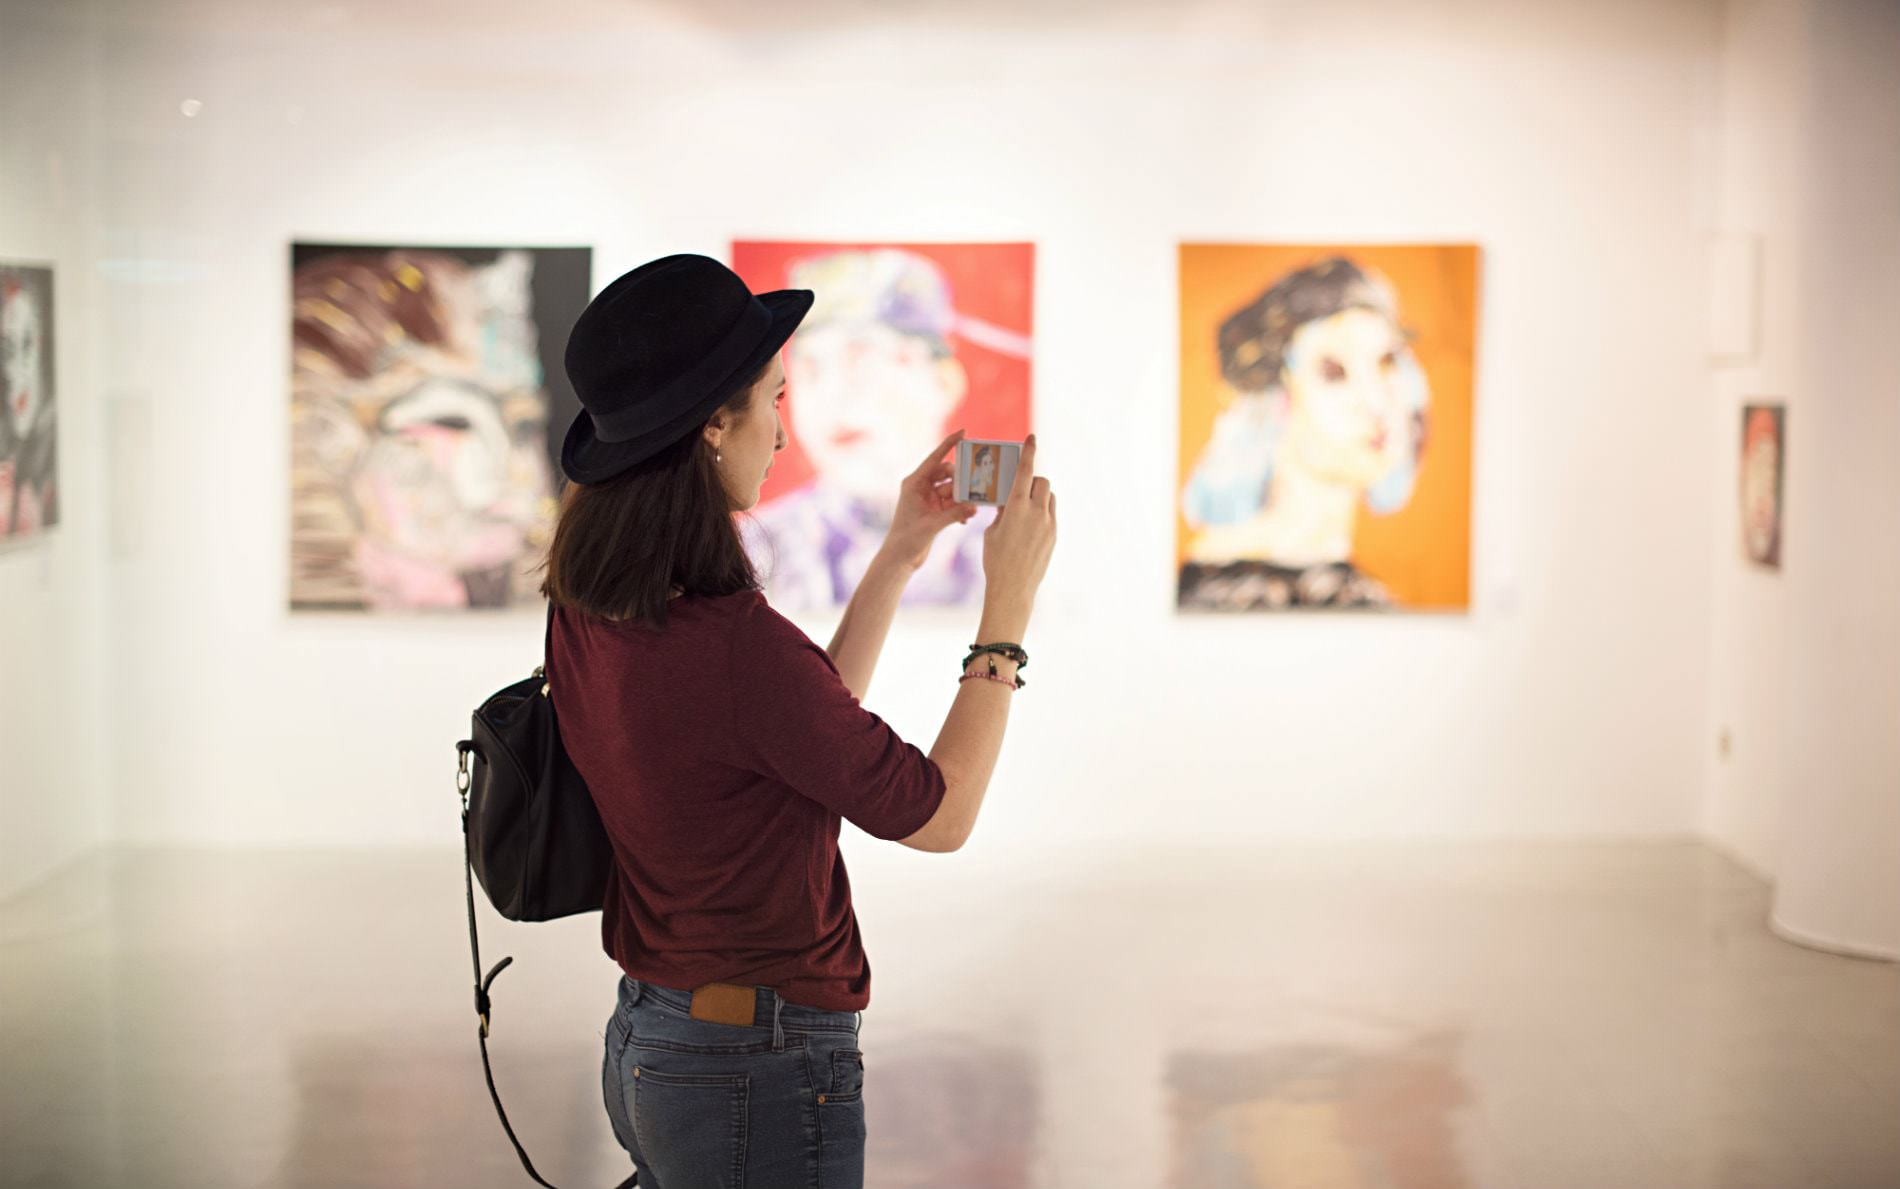 Brown haired woman with black hat, red shirt, and jeans taking a photograph of art hanging on white walls